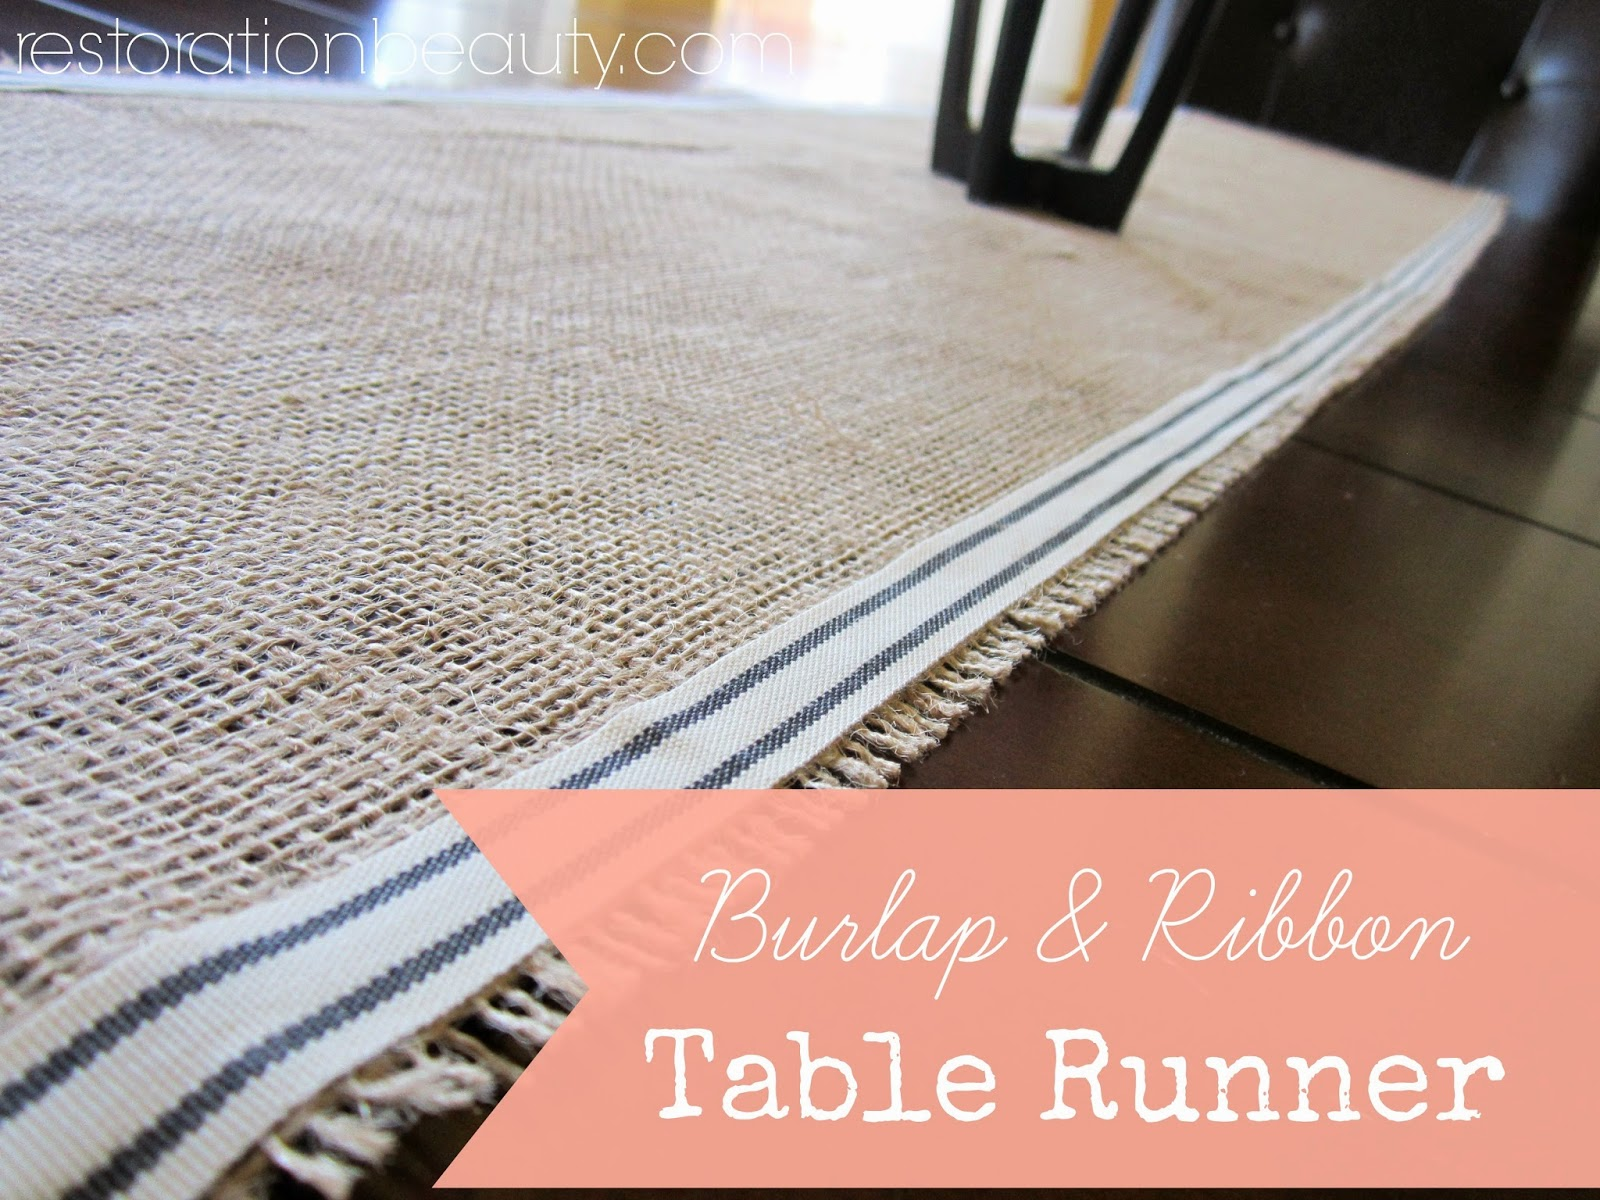 Restoration BeautyBurlap  Ribbon Table Runner